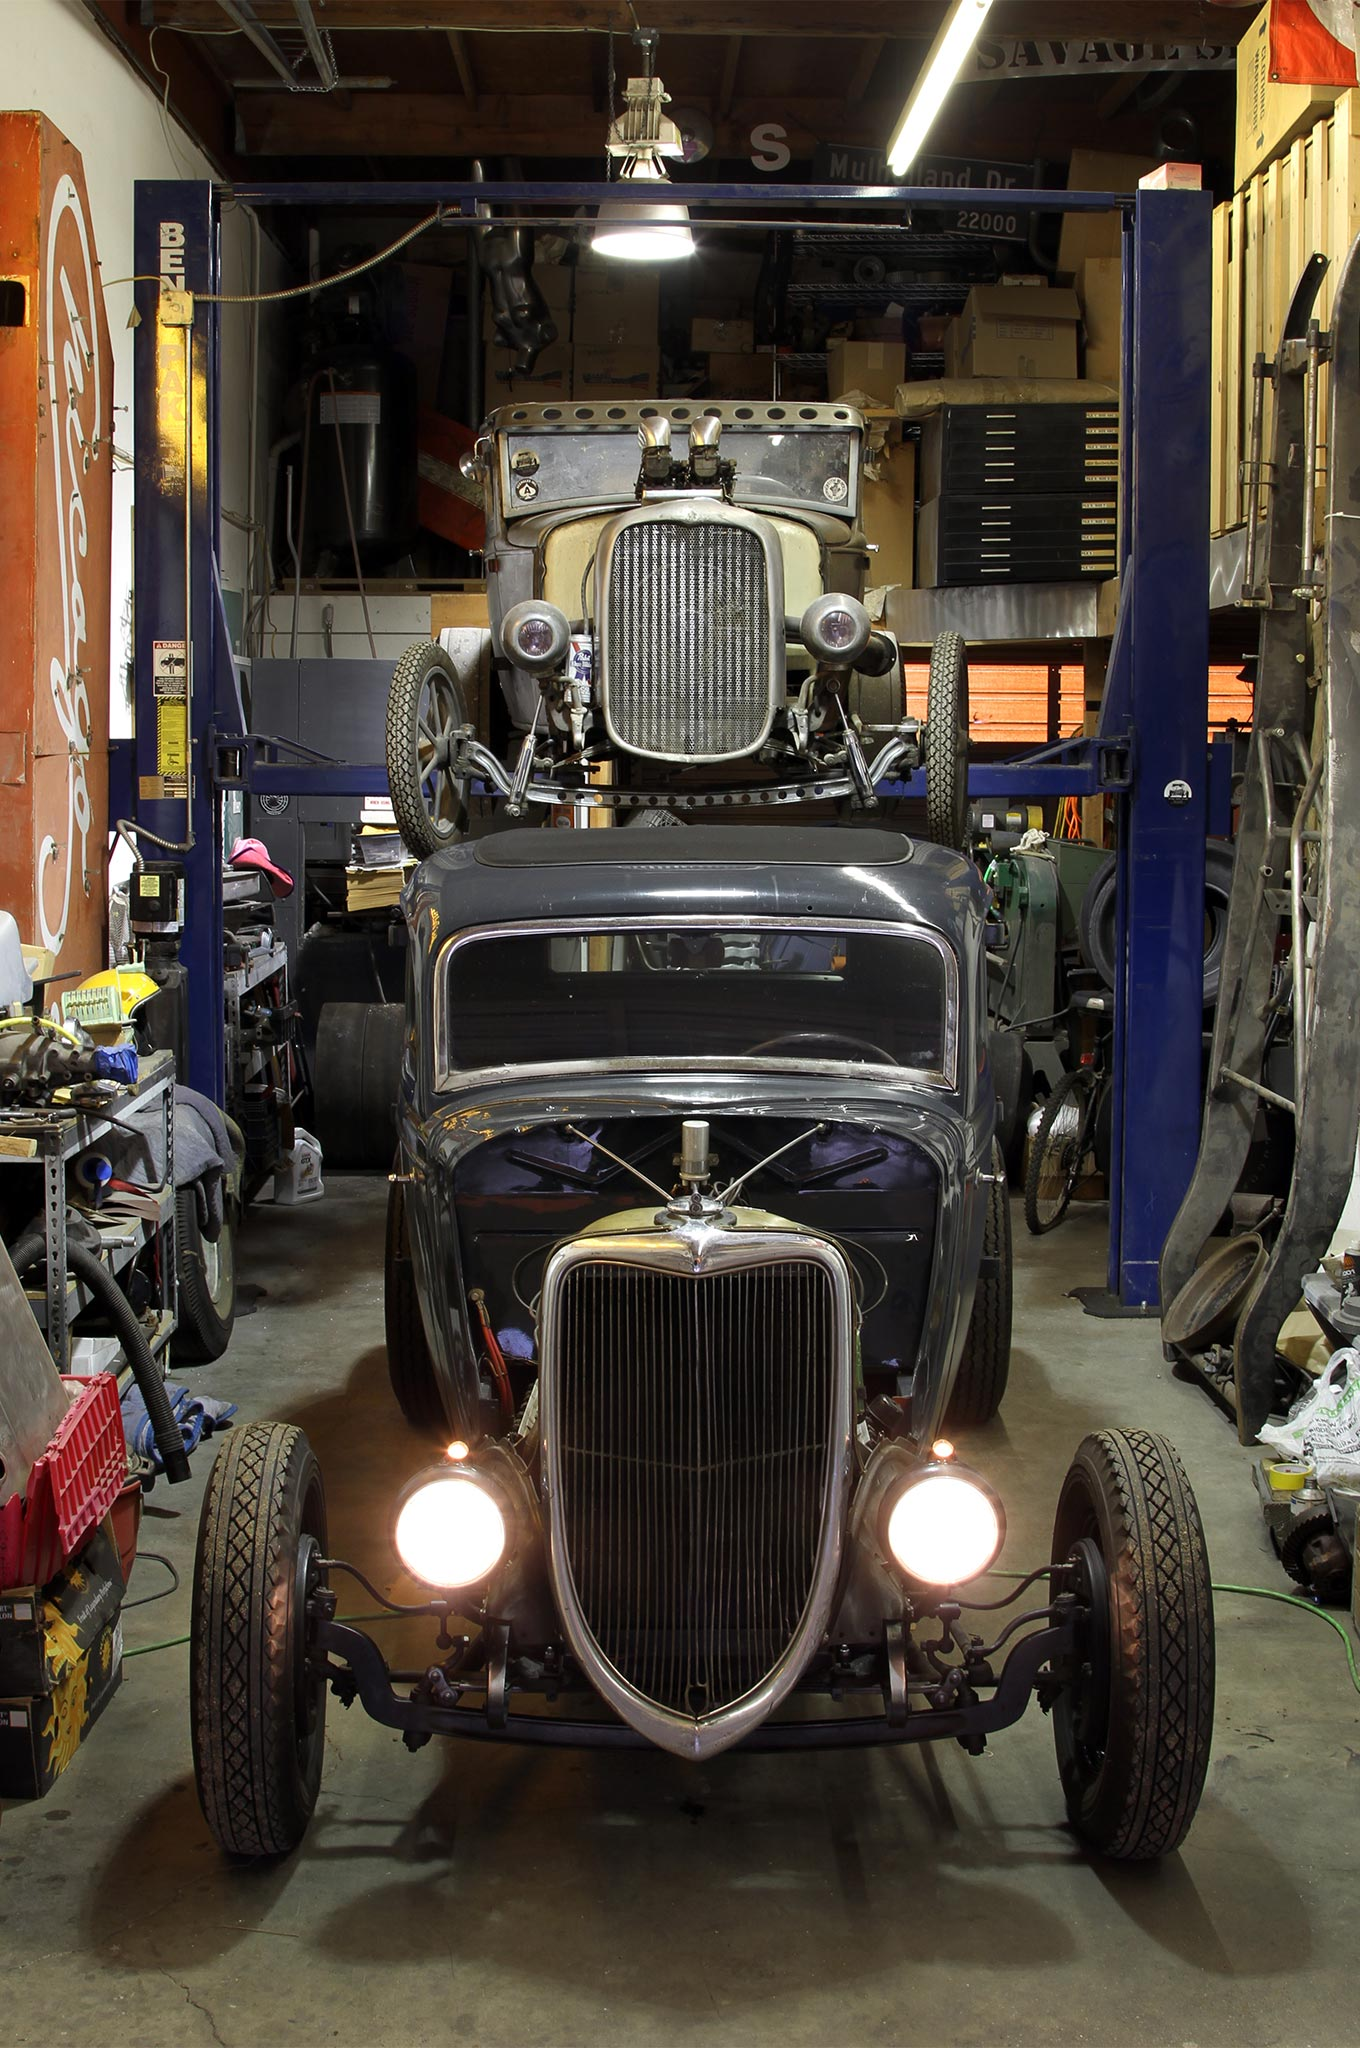 A Different Kind of Flathead: A 1937 Cadillac V-8 Powers This 1934 Ford 5-Window Coupe - Hot Rod ...